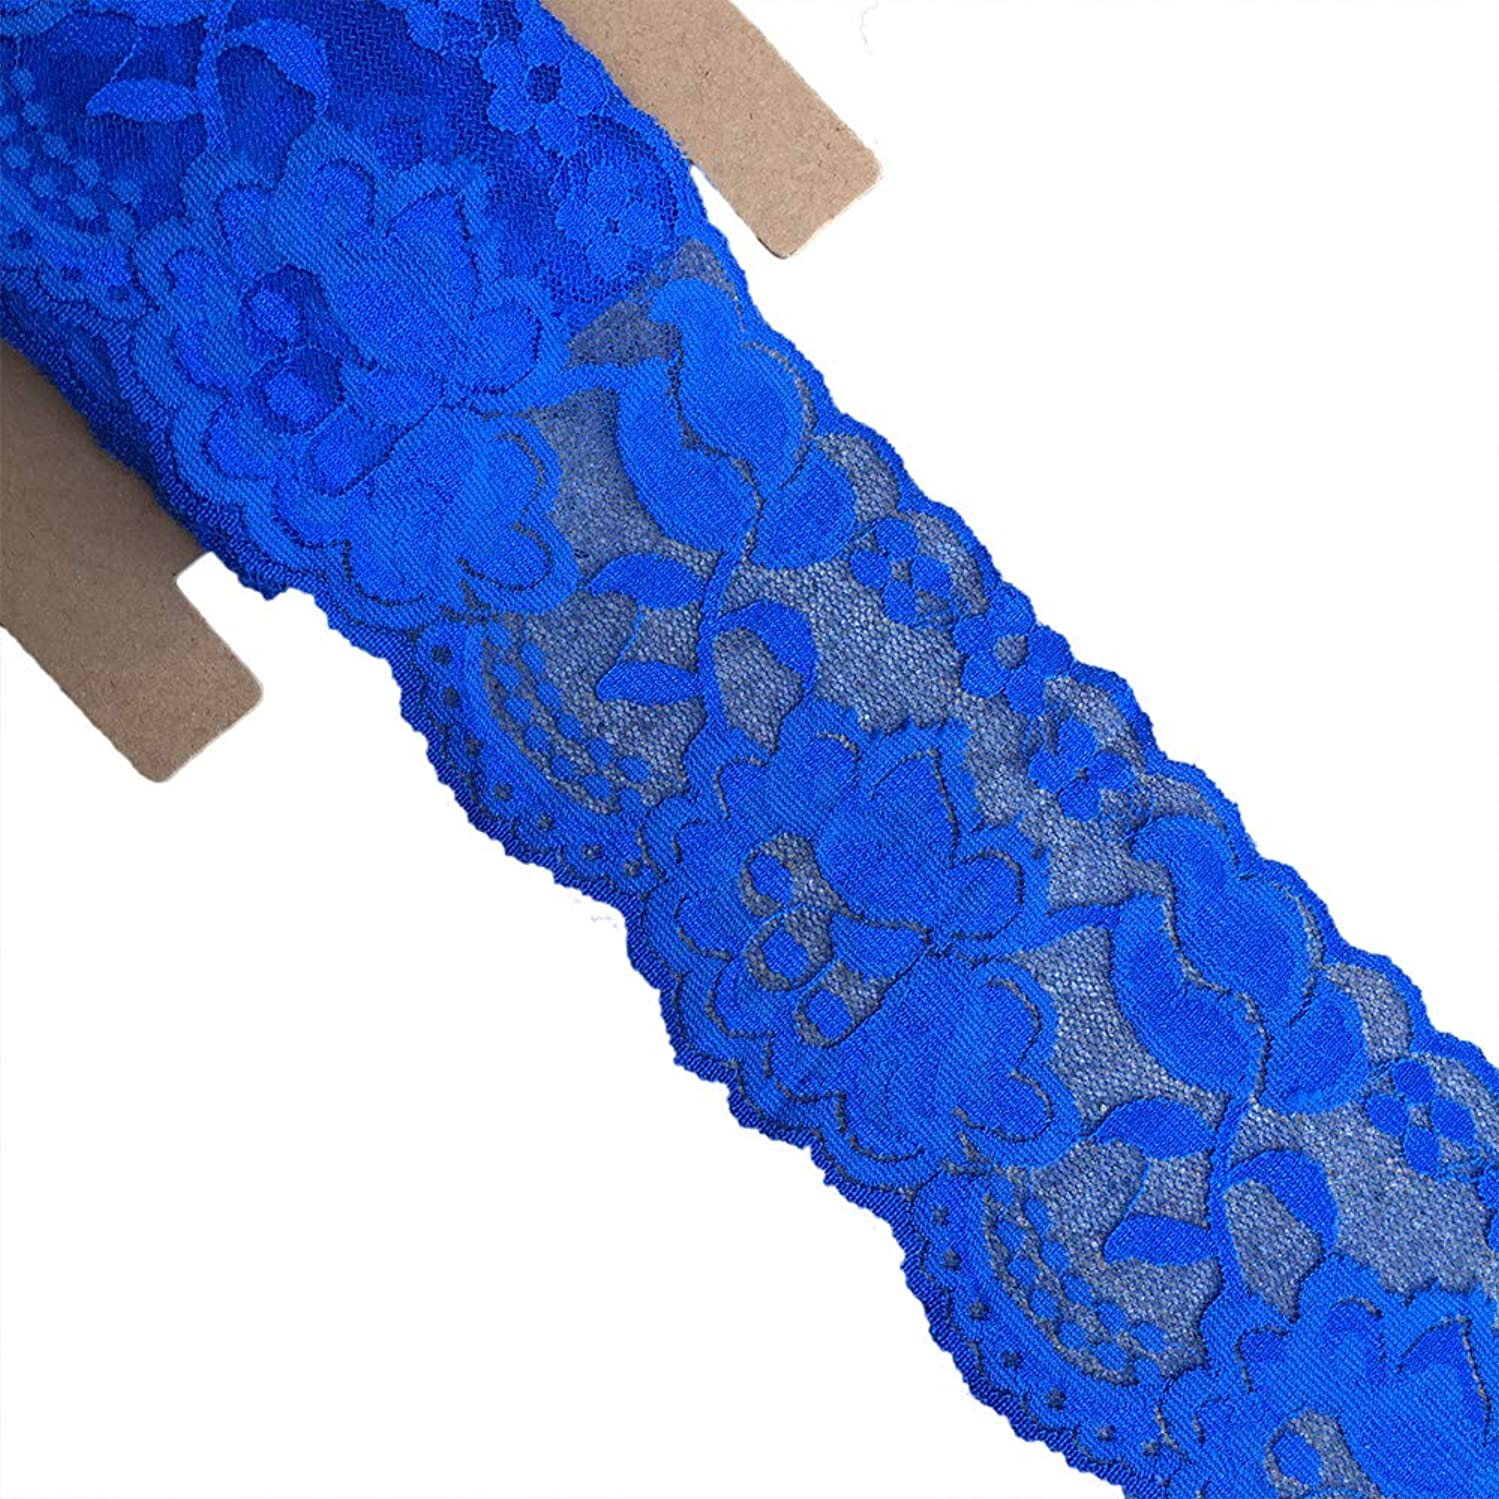 Lace Realm 3.15 Inches Wide×10 Yards Stretch Floral Pattern Lace Ribbon for Wedding Invitation, Sewing, Gift Package Wrapping, Floral Designing & Crafts (Royal Blue)